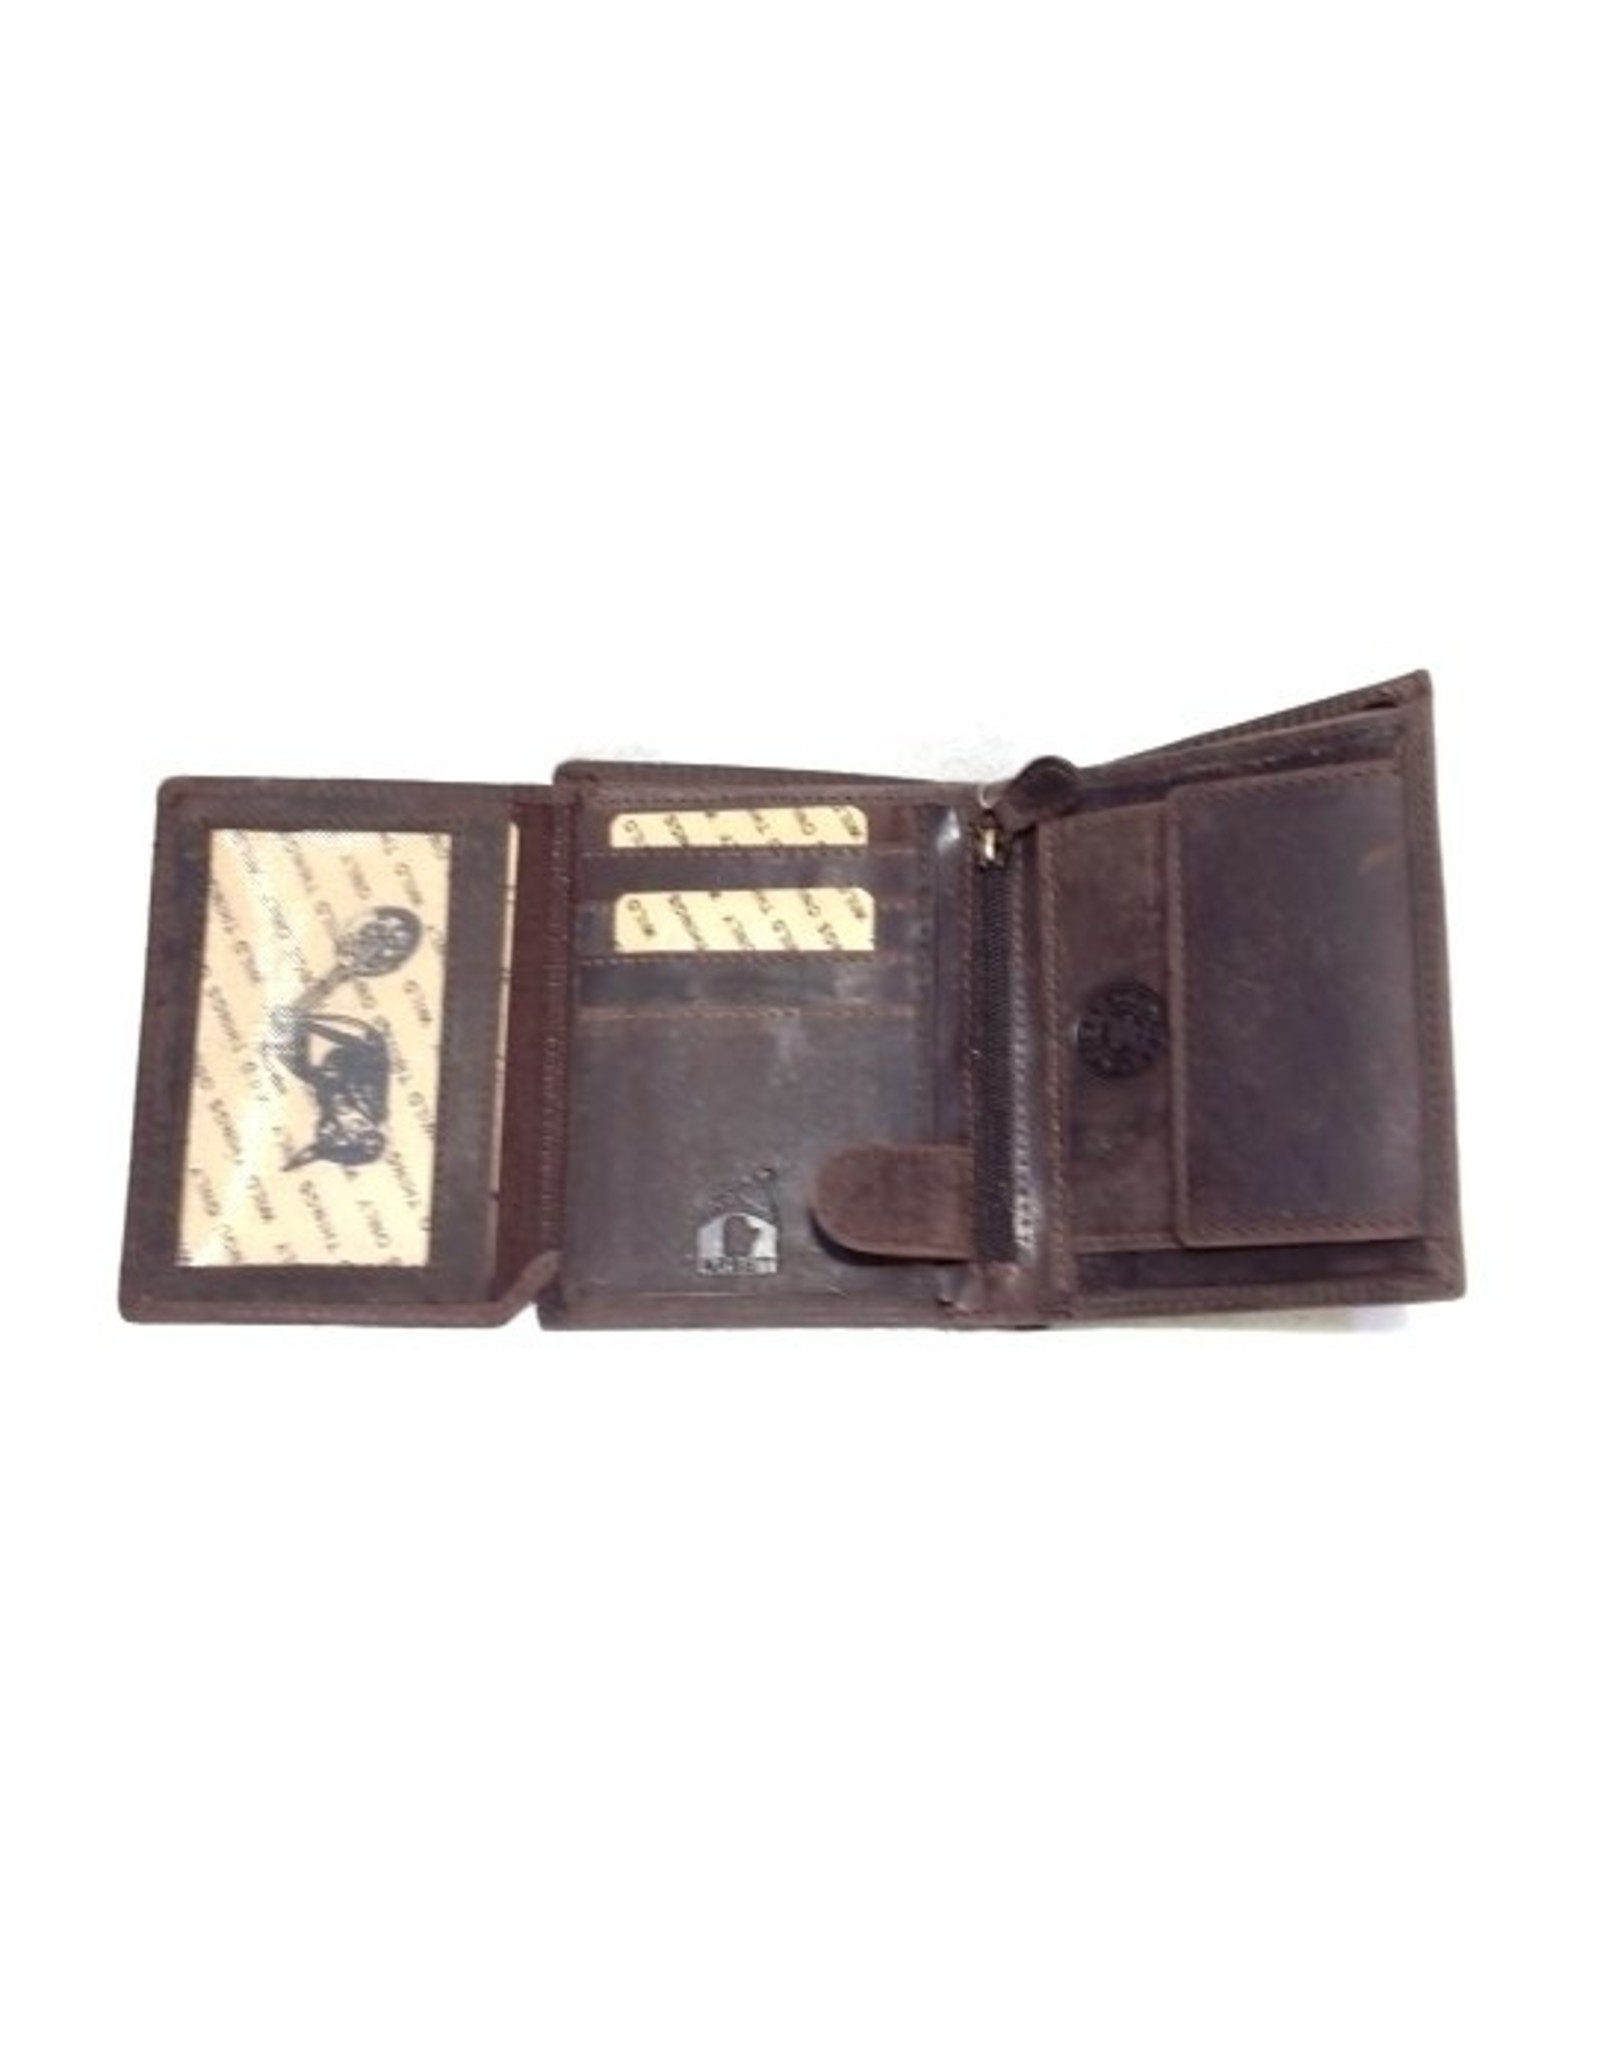 Trukado Leather wallets - Leather Wallet with Bike